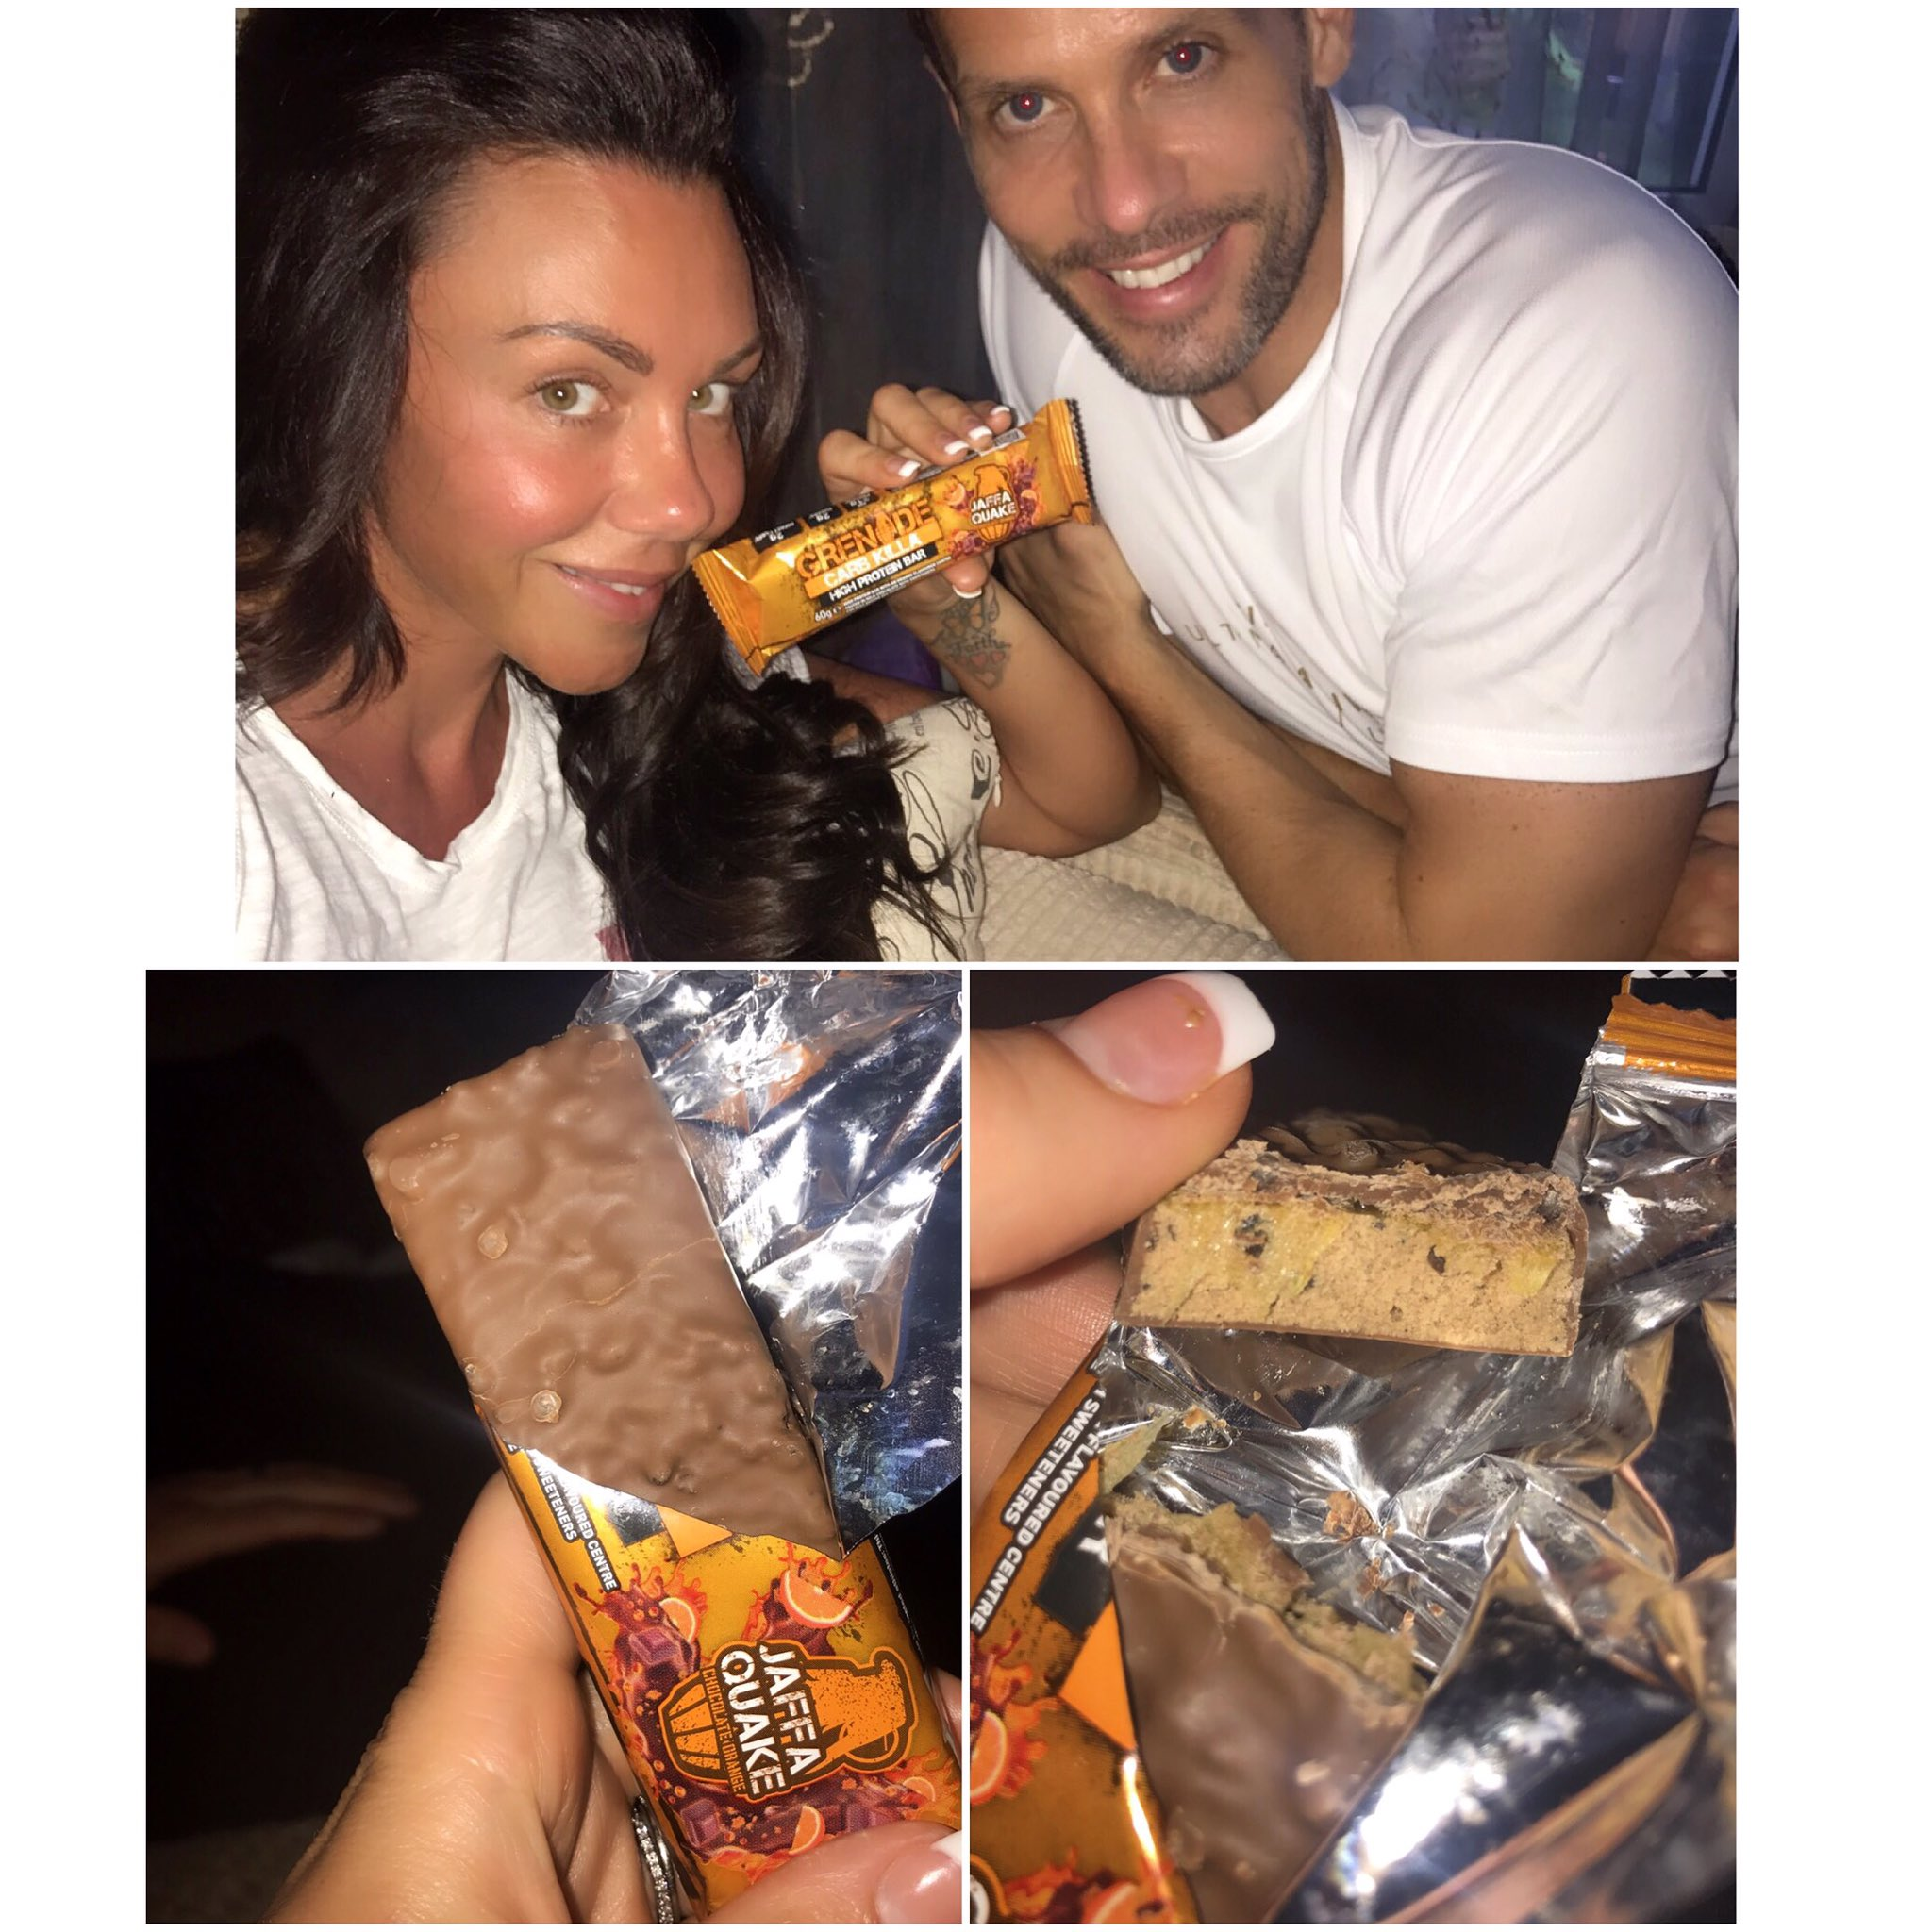 Taste testing the new #jaffaquake bar by @ThermoGrenade ... and the verdict is #awesome https://t.co/61xKBzprUZ